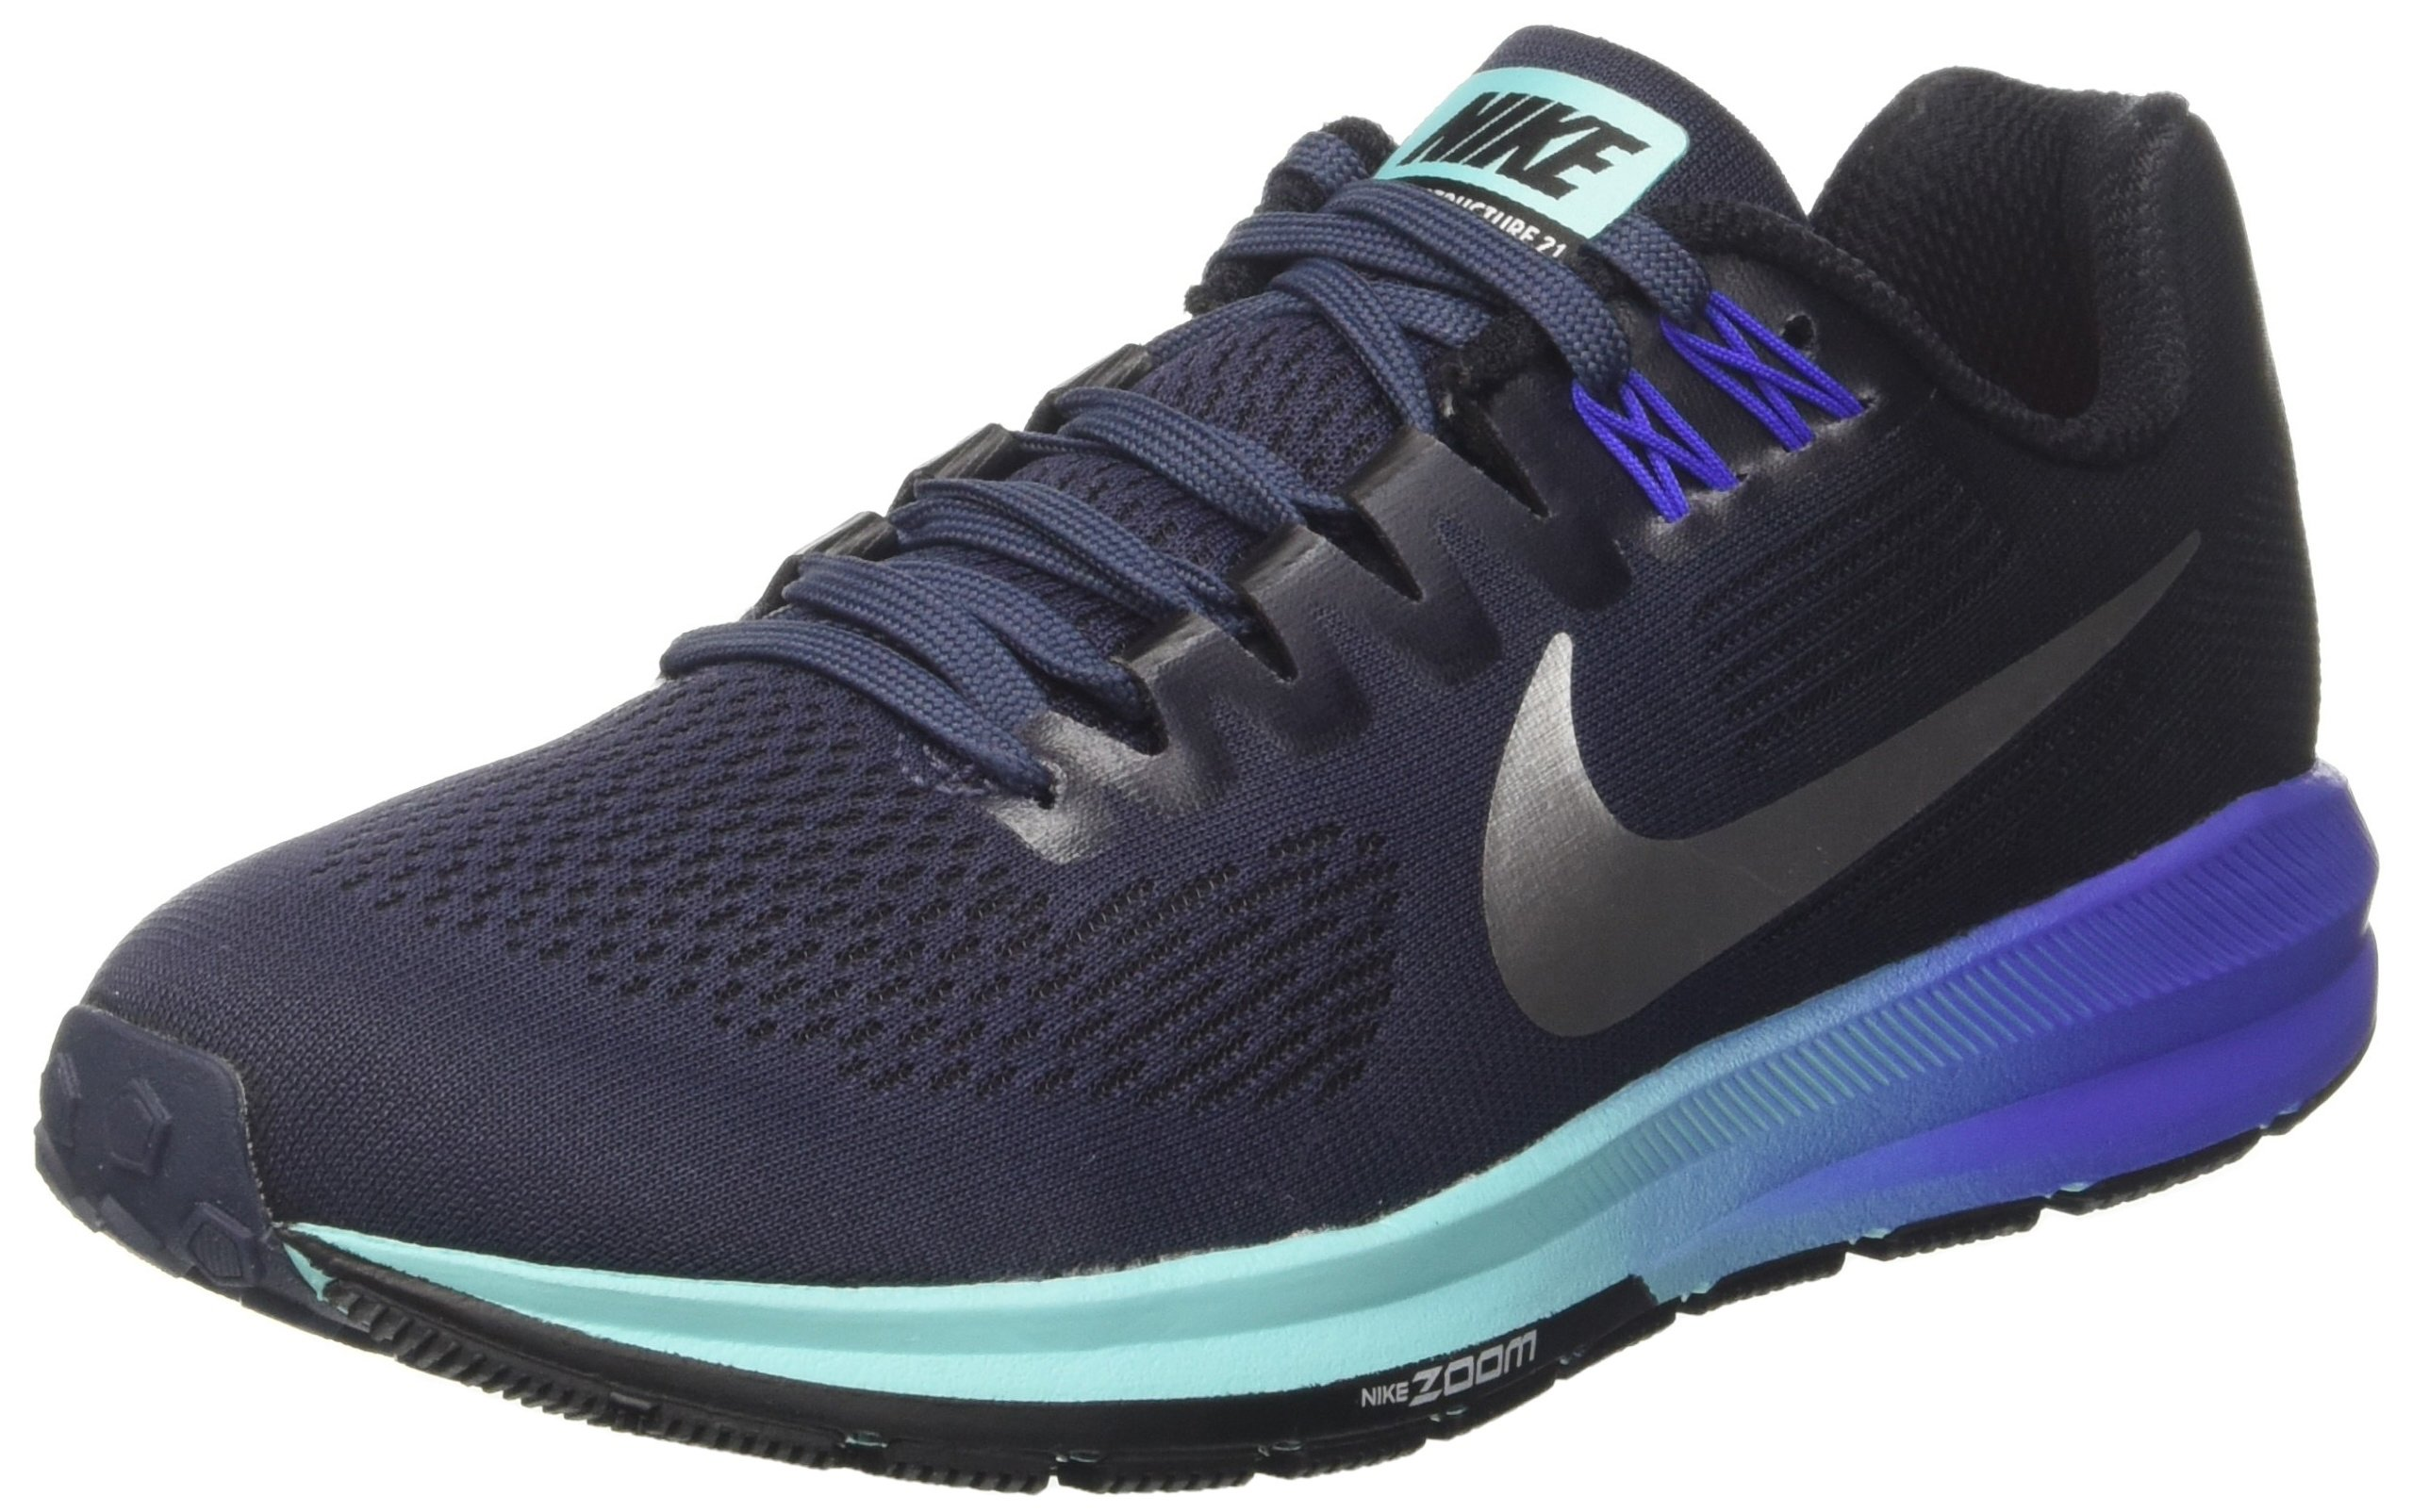 b1ab7813a48 Galleon - Nike Women s Air Zoom Structure 21 Running Shoe Thunder  Blue Metallic Silver Black Size 7 M US